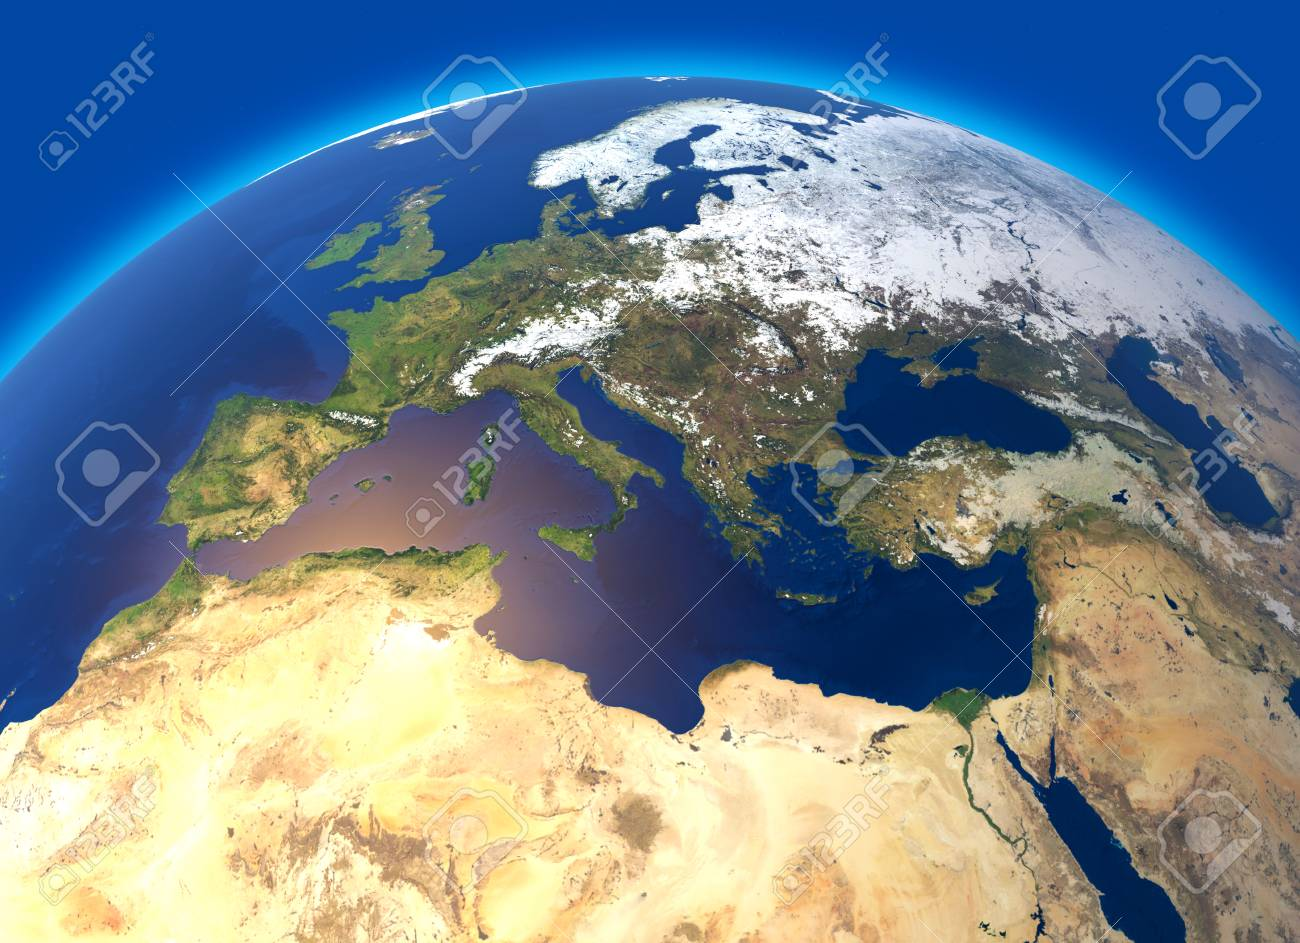 Physical map of the world, satellite view of Europe and North.. on world map of europe, road map of europe, aerial view of europe, wire map of europe, wales map of europe, satellite wallpaper, mexico of europe, topographic map of europe, full map of europe, germany of europe, blank map of europe, asia of europe, home map of europe, relief map of europe, climate map of europe, military map of europe, canada of europe, winds of europe, google maps europe, physical map of europe,